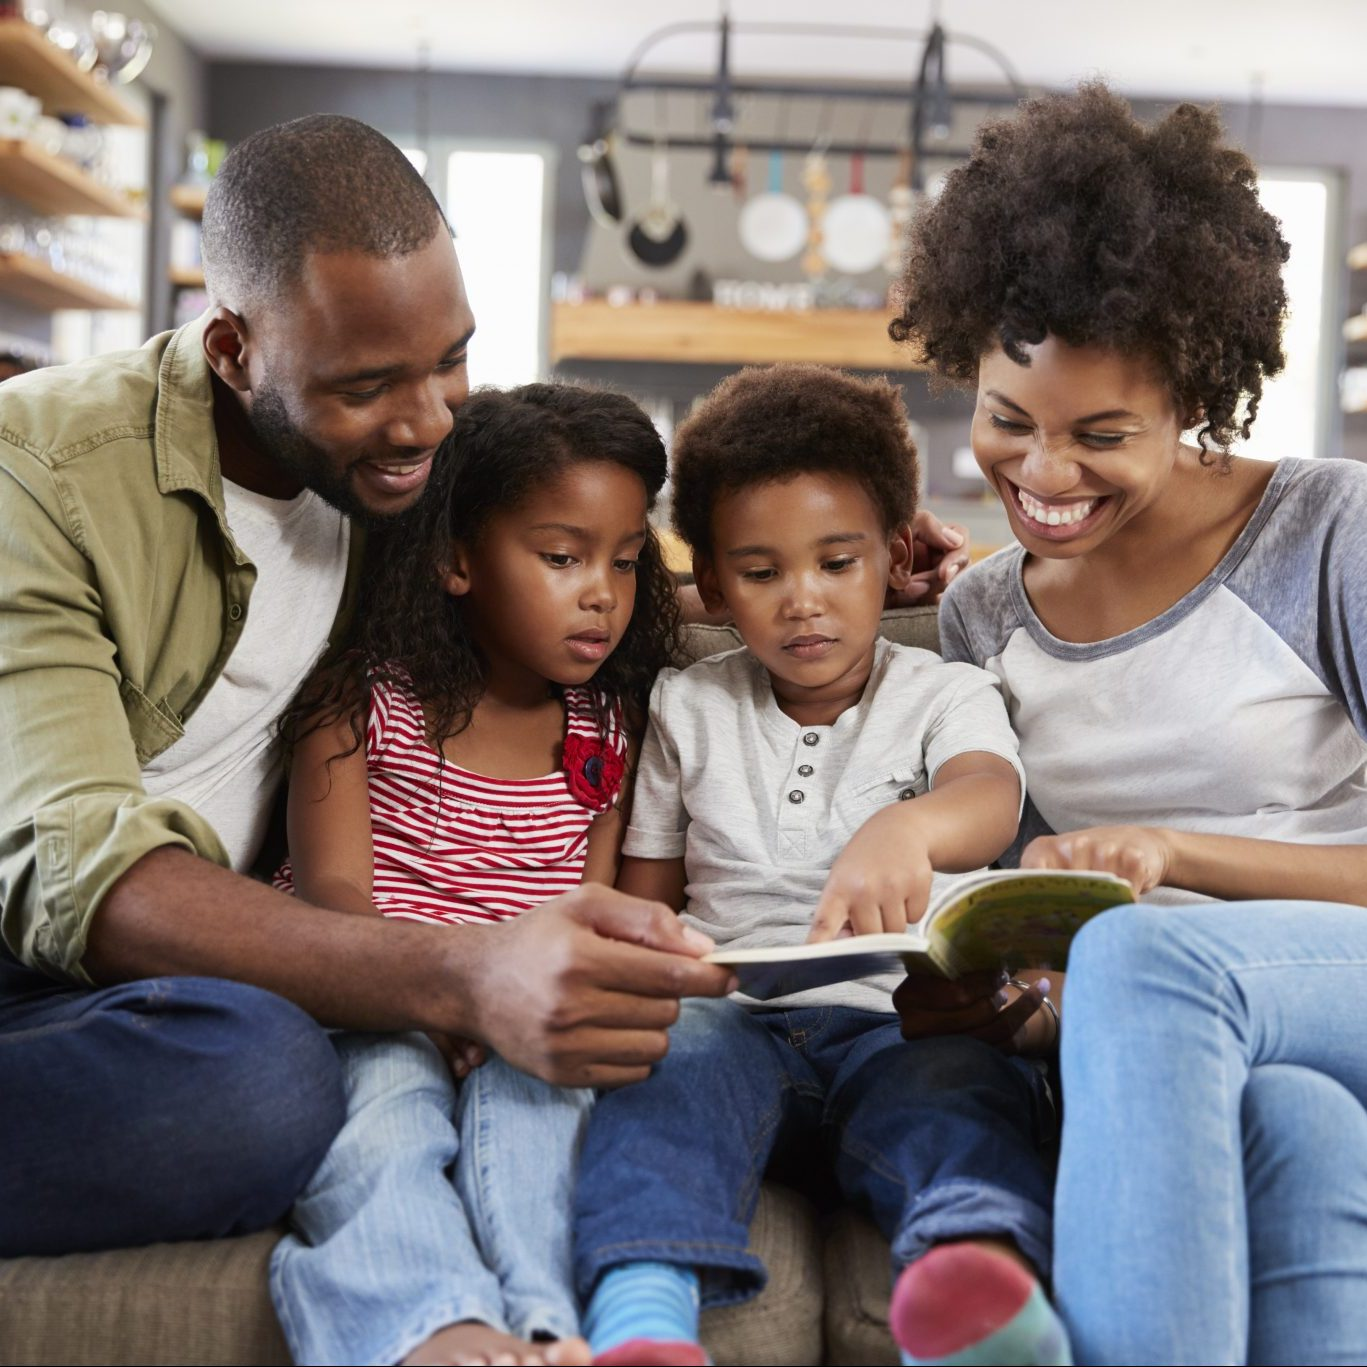 Mom and dad with two young children sitting on sofa reading a book together